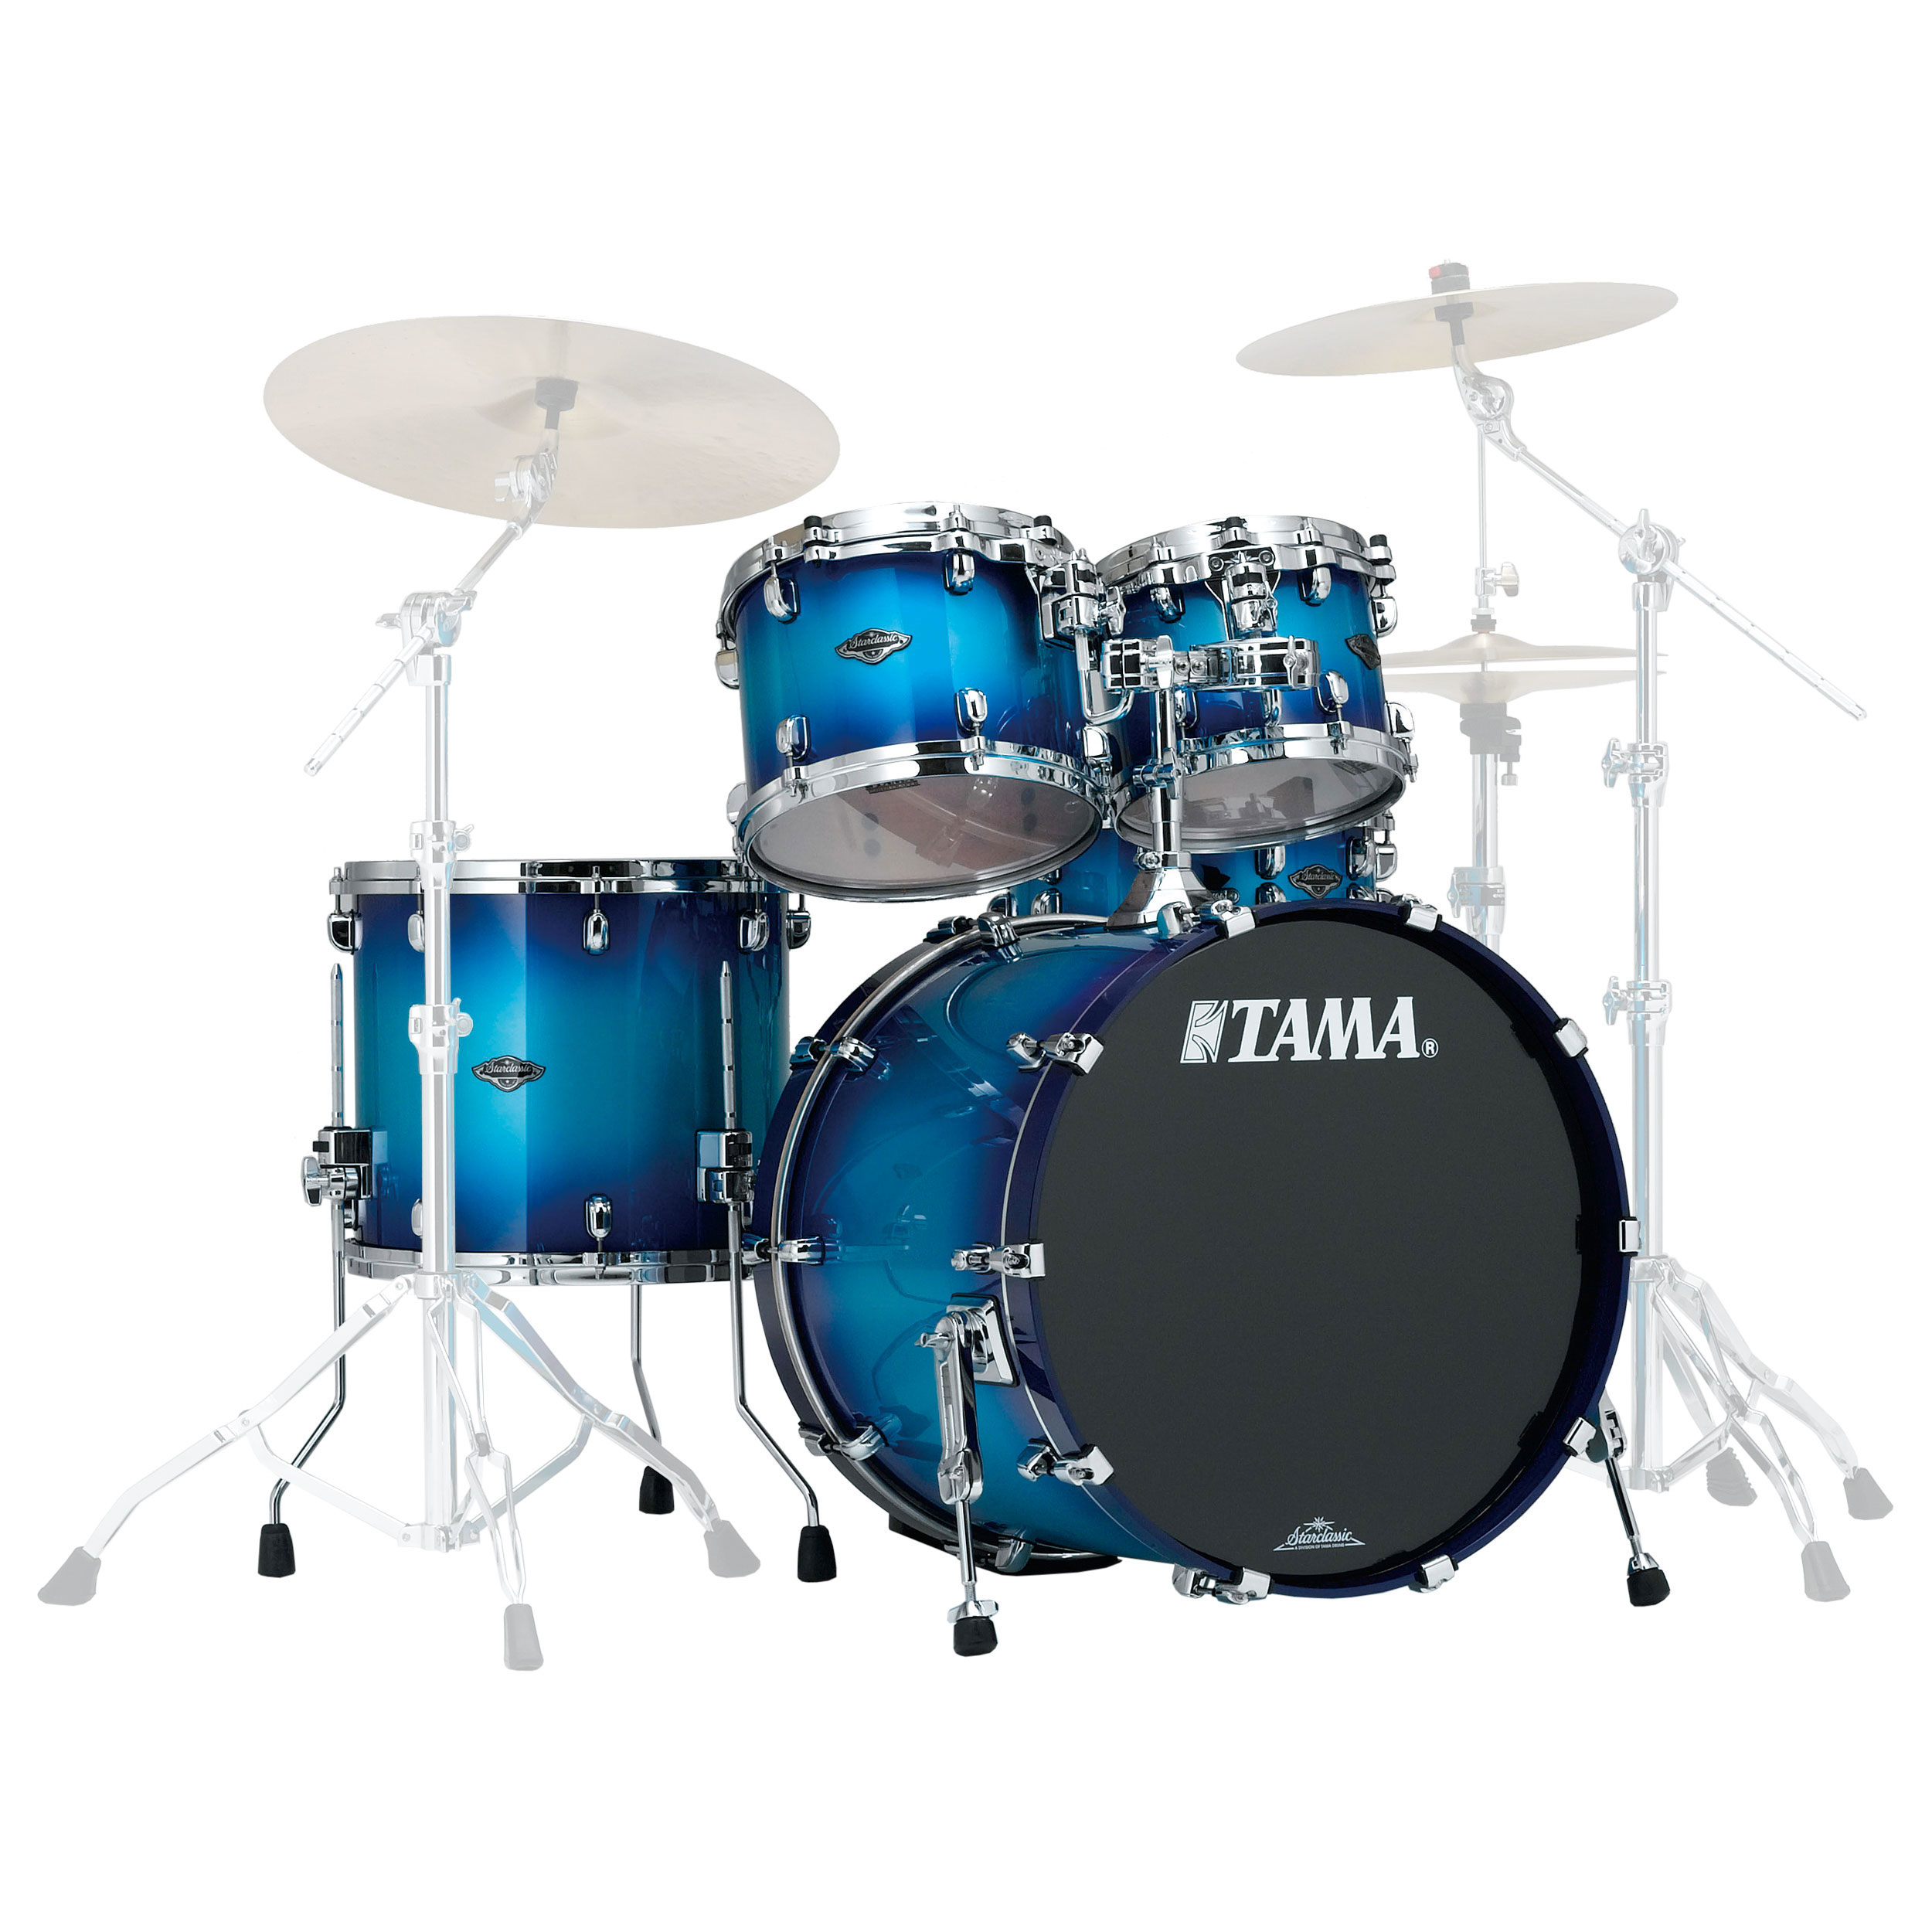 "Tama Starclassic Performer B/B 4-Piece Drum Set Shell Pack (22"" Bass, 10/12/16"" Toms) in Transparent/Solid Finish"